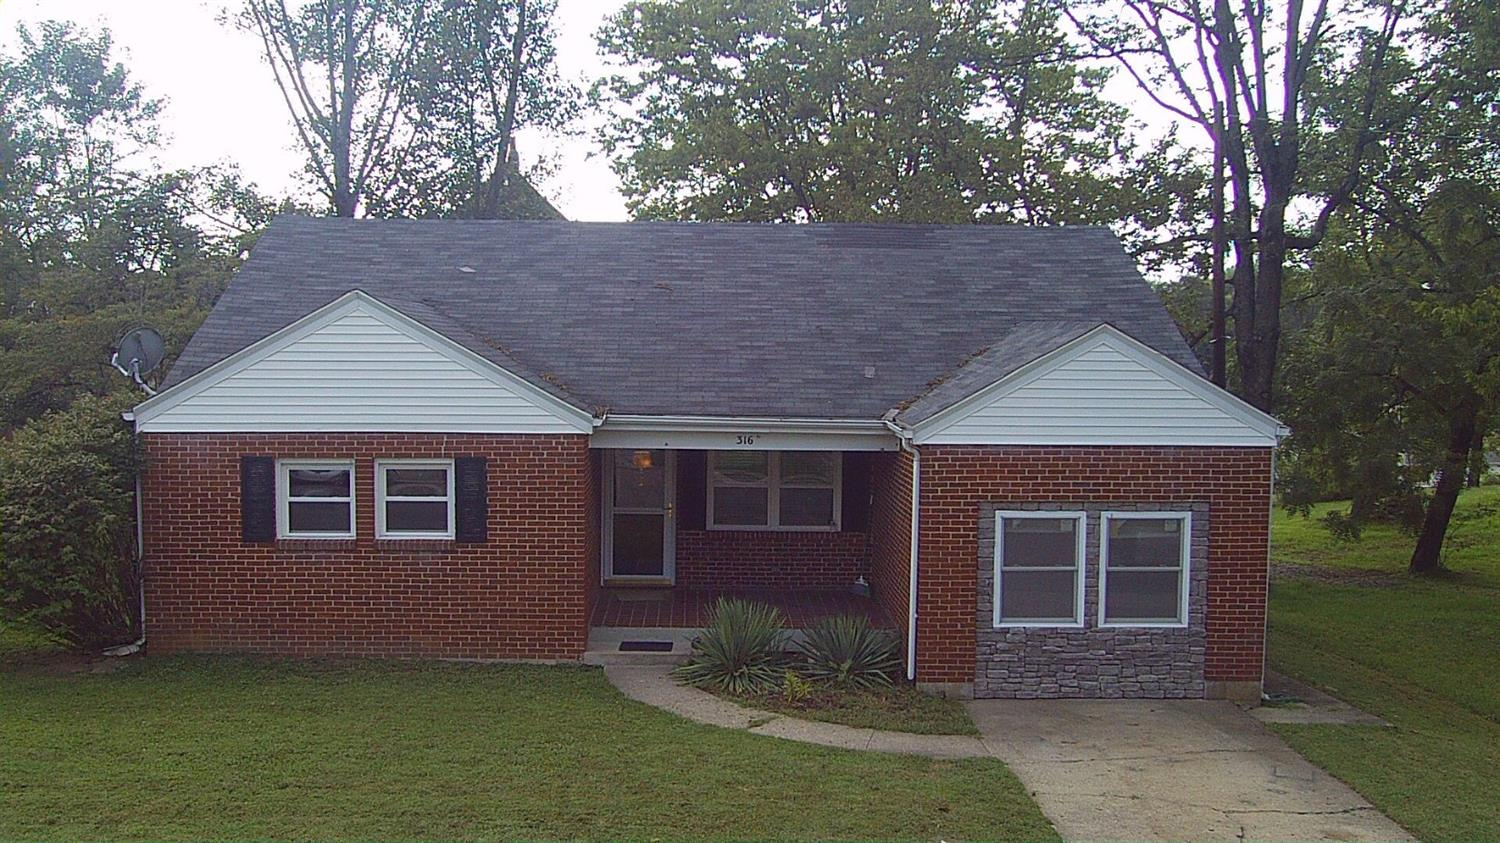 real estate photo 1 for 316 N Adams St Owenton, KY 40359